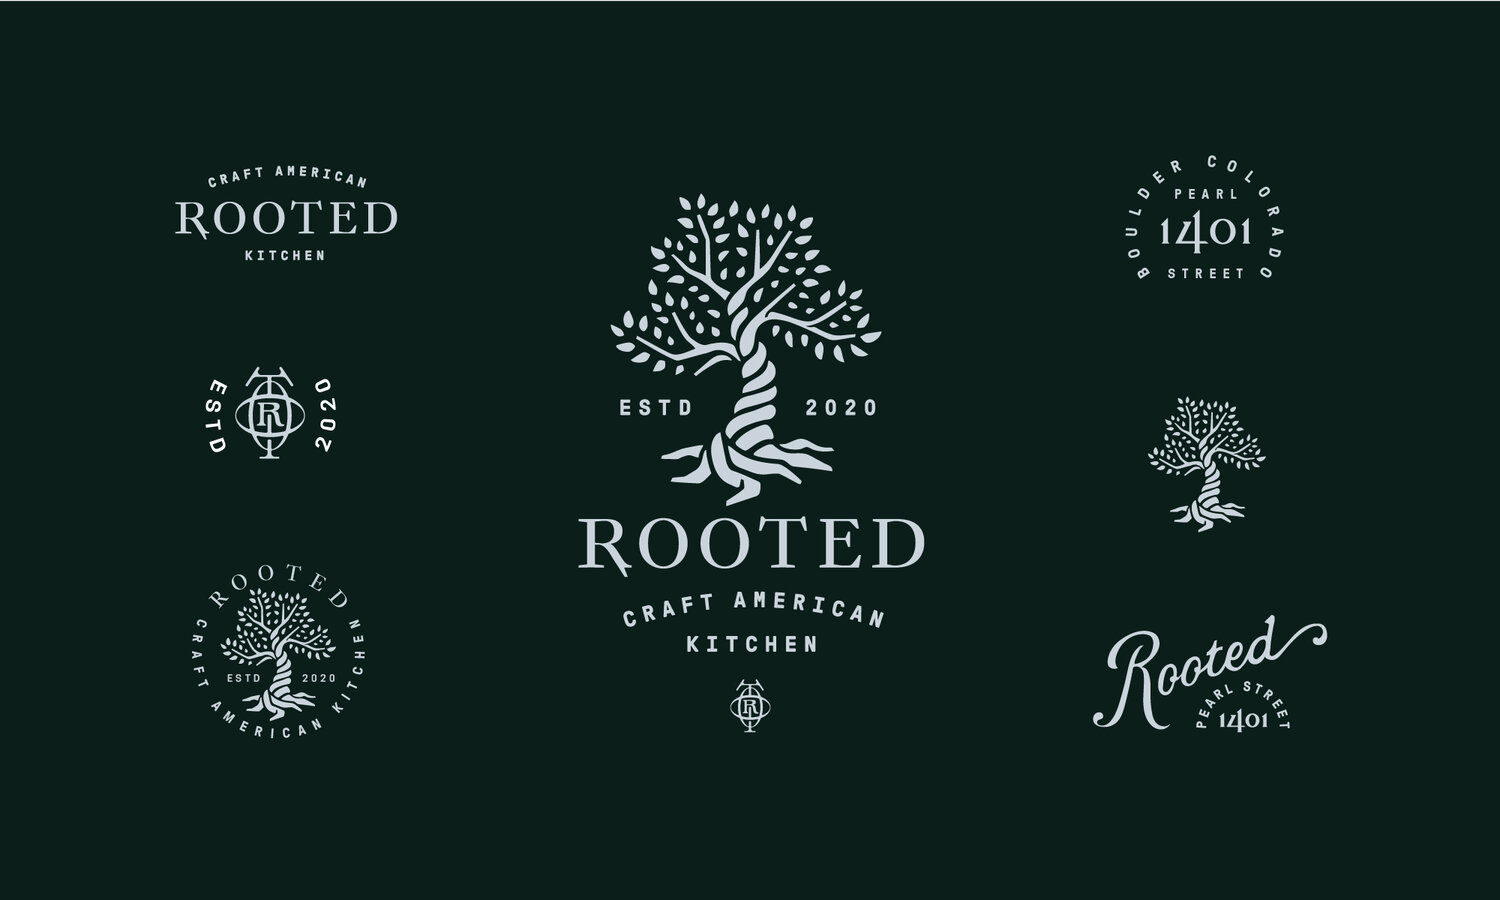 Rooted logos